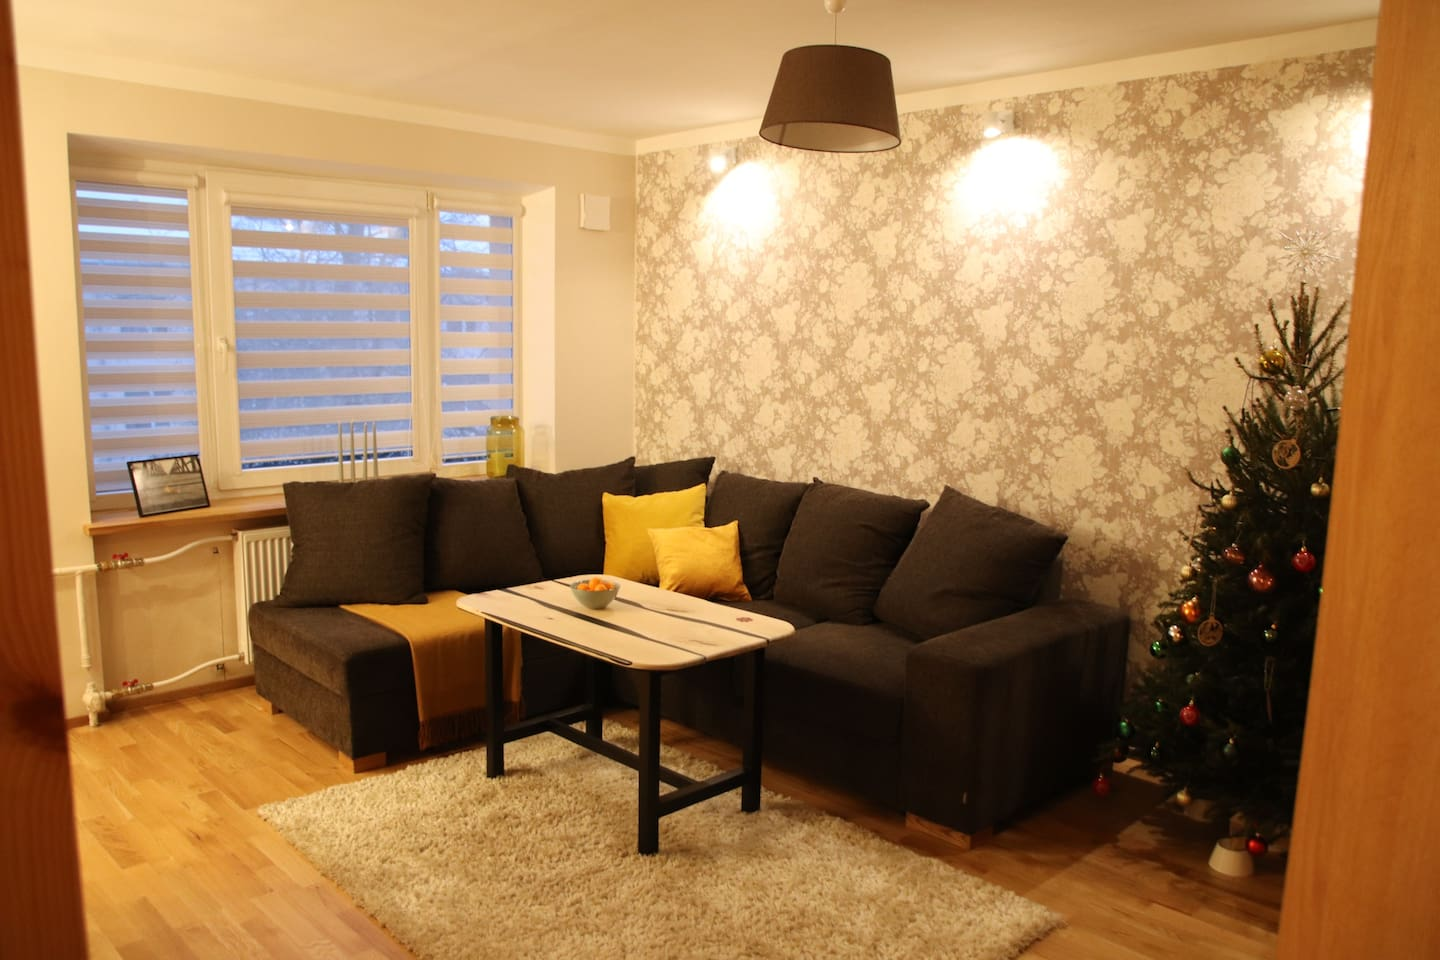 Livingroom (sofa opens up as double bed)